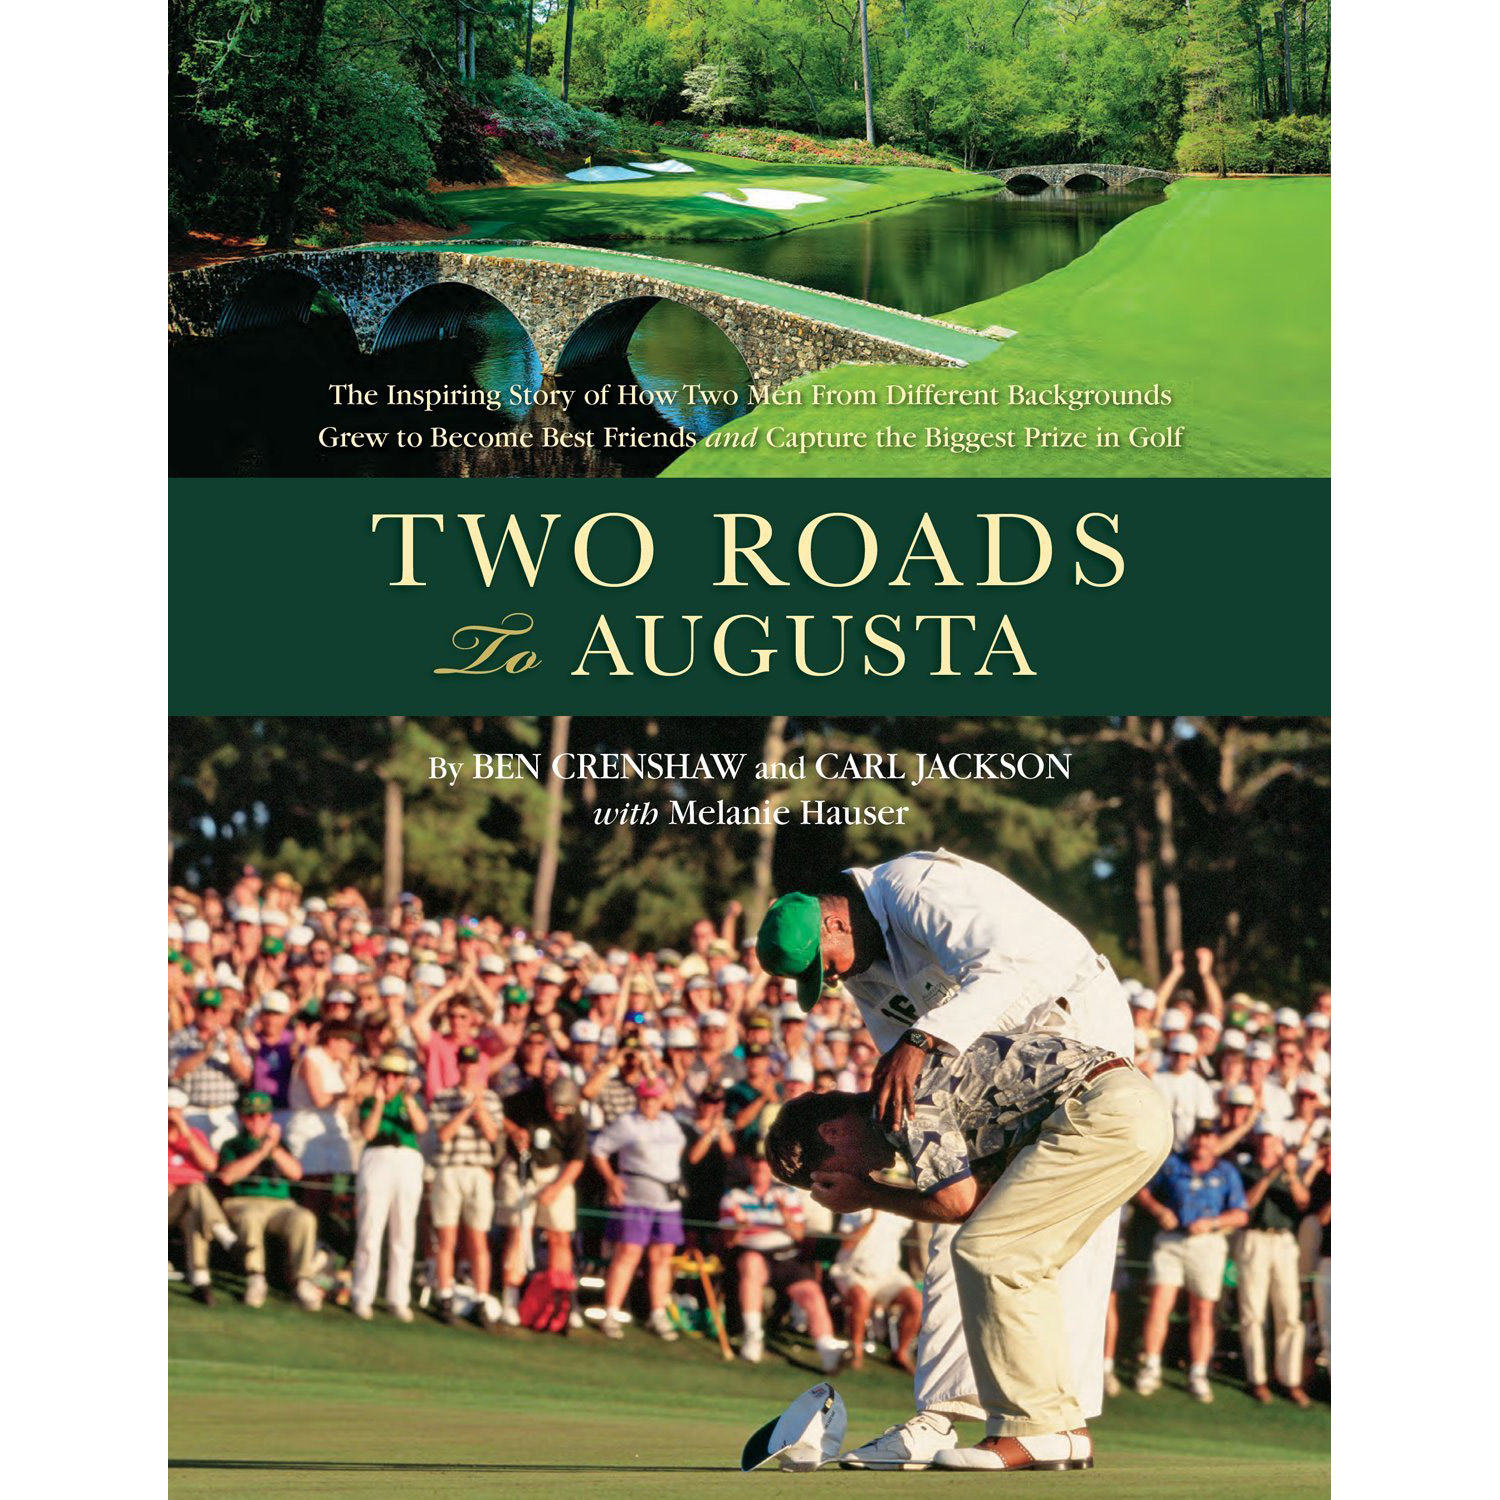 The cover photo of the hulking Jackson tenderly consoling a victorious, doubled-over Crenshaw at the 1995 Masters just days after the death of Crenshaw's beloved mentor Harvey Penick is one of golf's most memorable; so is the abiding relationship between Gentle Ben and his Augusta caddie. How their paths diverged is a distinctly American kind of story, told as a lushly illustrated dual biography spread out against a backdrop of the game and the cultural canvas of the times. Buy It Now